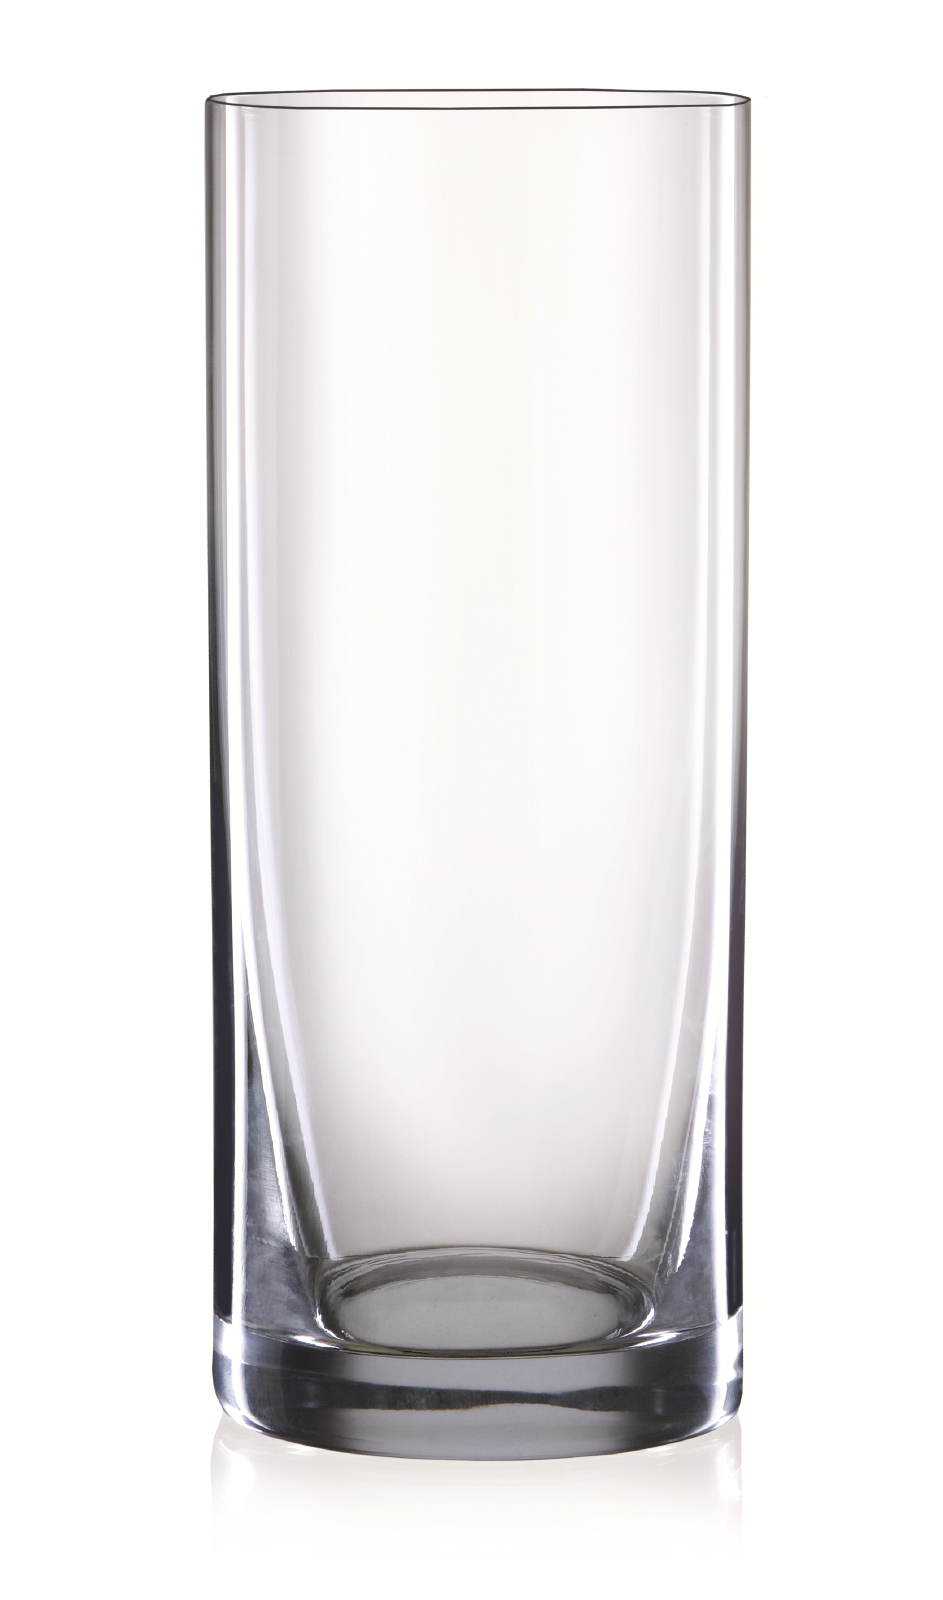 Bohemia Crystal Vase (260 mm) Bar Glassware in Transparent Colour by Bohemia